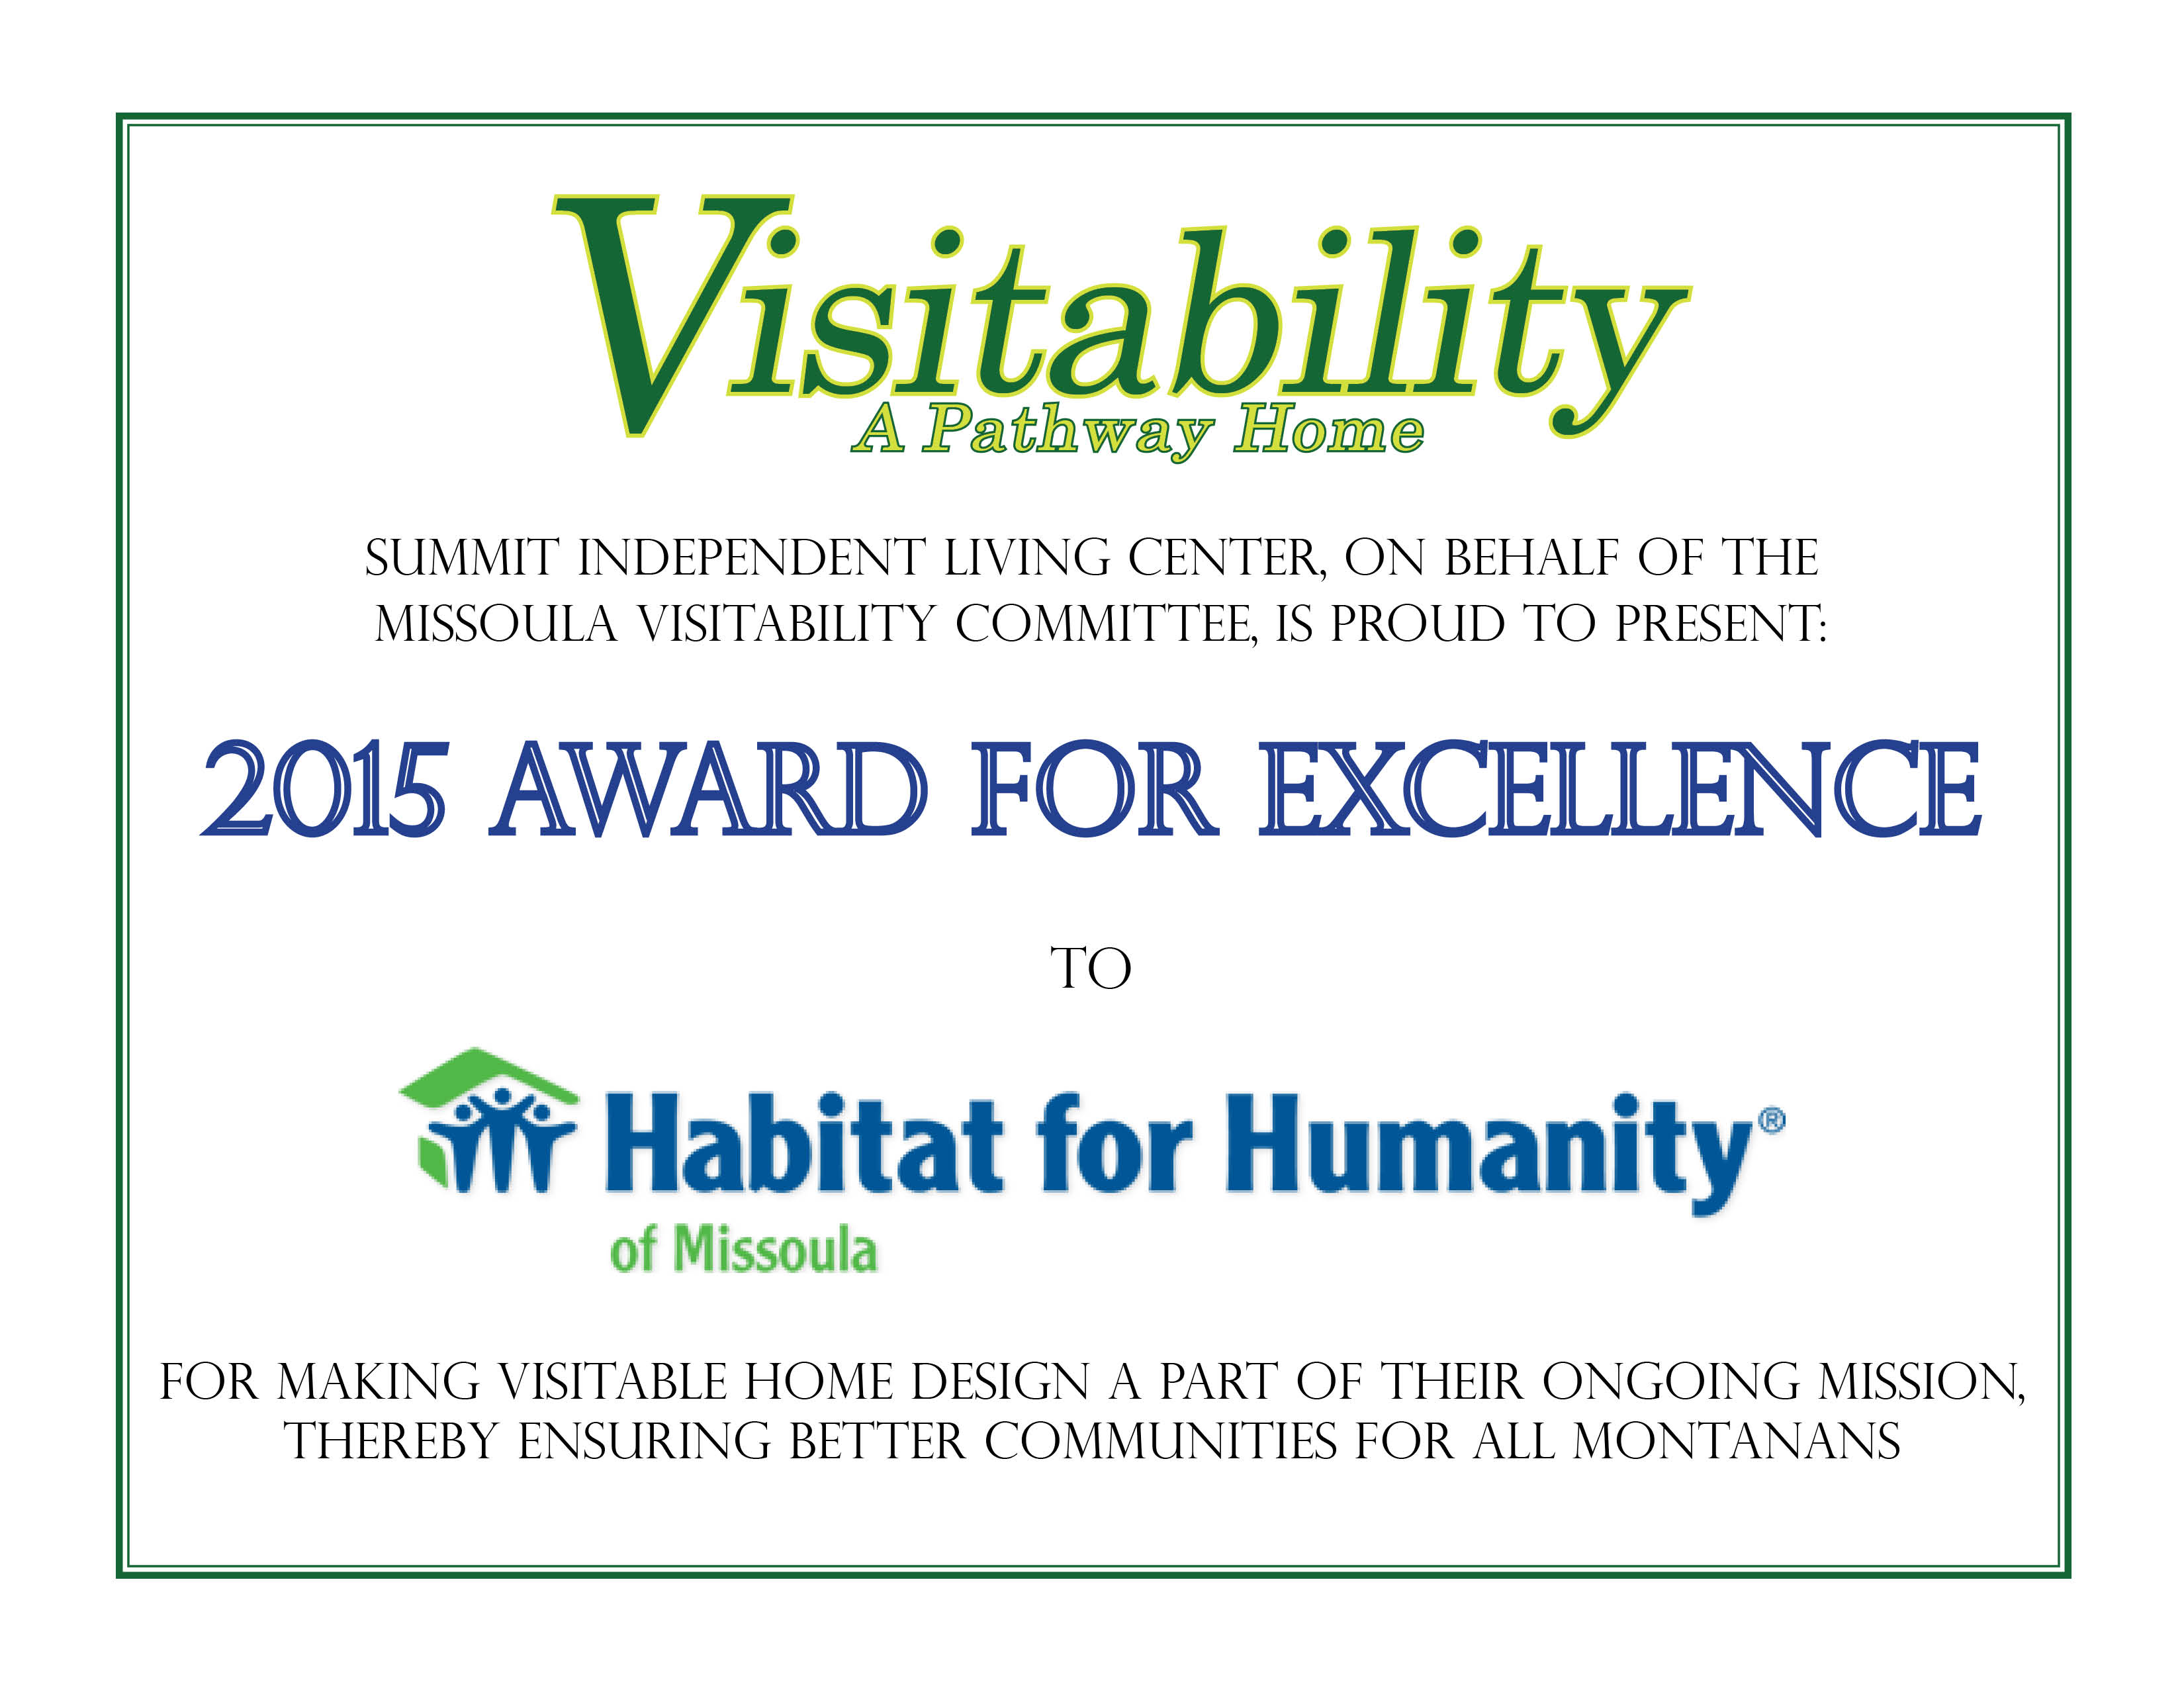 2015 Award for Excellence - Summit Independent Living Center, on behalf of the Missoula Visitability Committee, is proud to present: 2015 Award for Excellence to Habitat for Humanity of Missoula for making Visitable Home Design a part of their ongoing mission, thereby ensuring better communities for all Montanans.